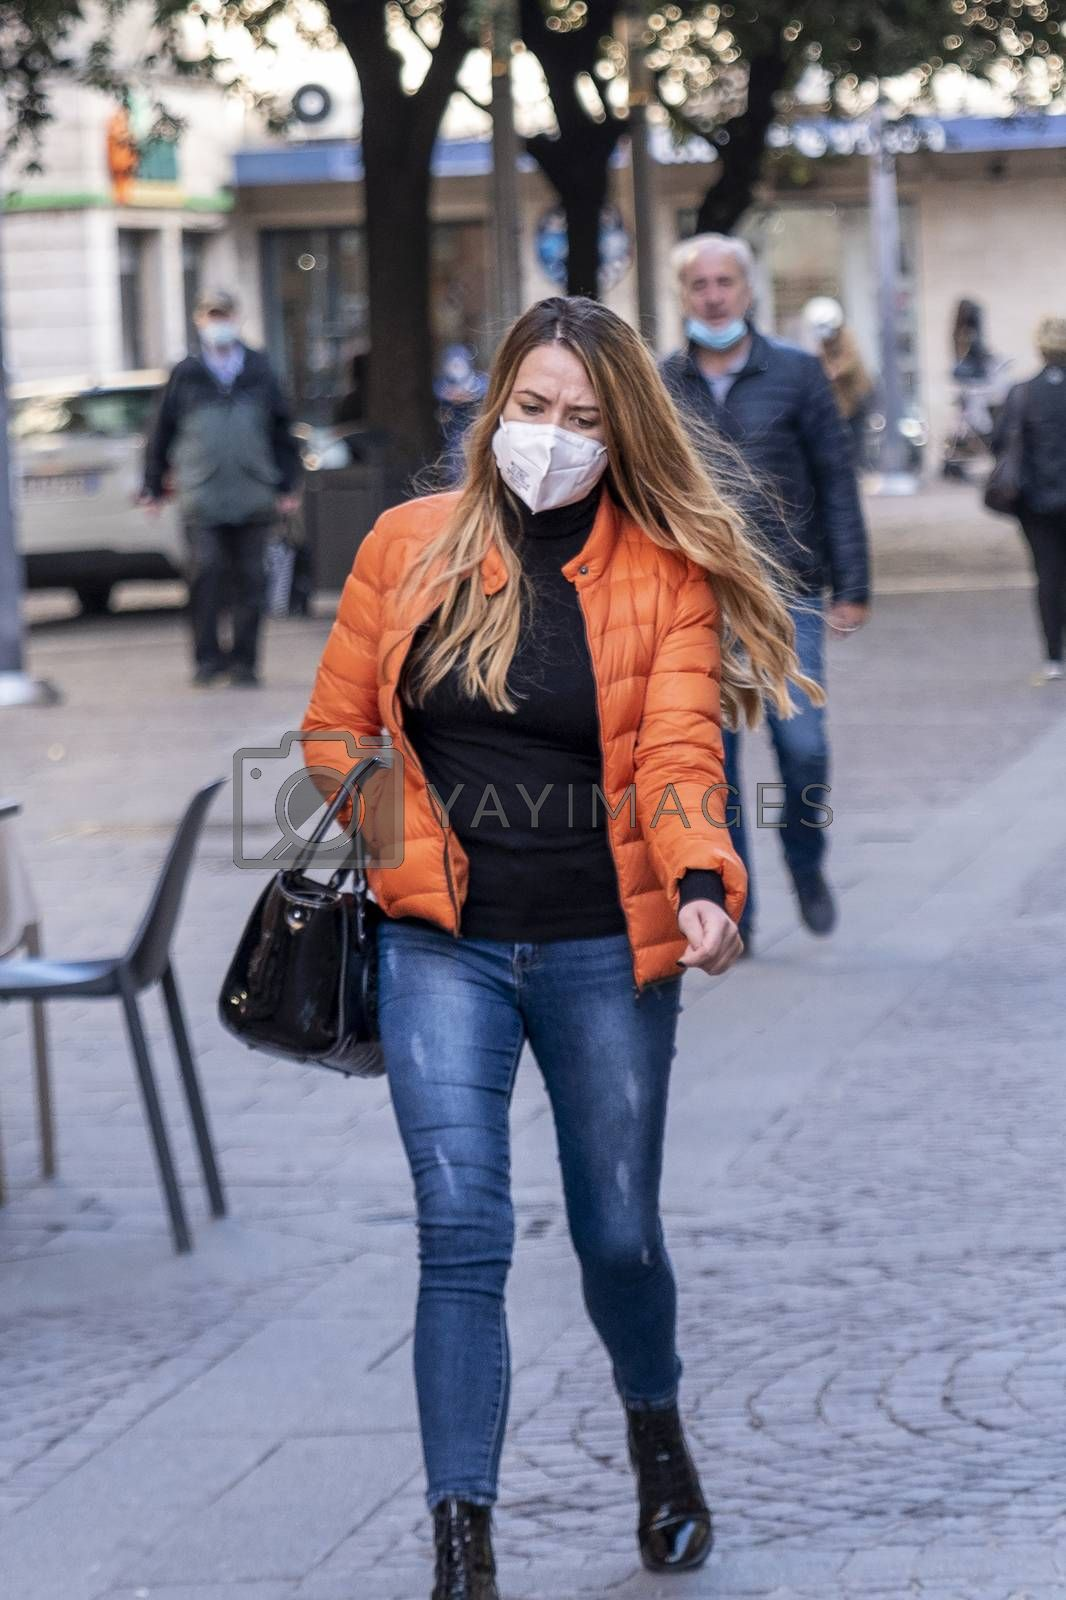 terni,italy october 21 2020:woman with medical mask walking downtown